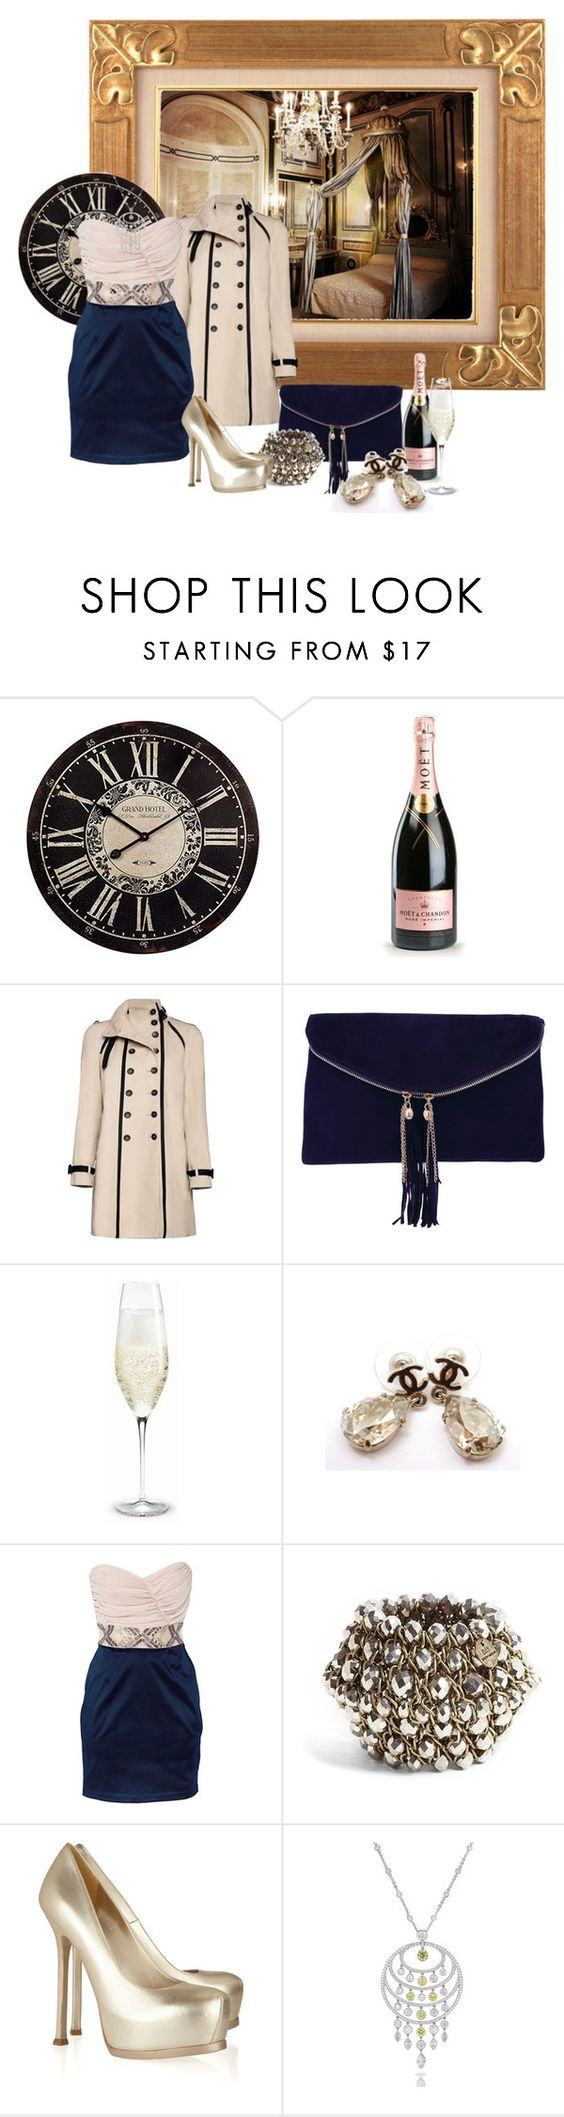 """""""FWF #58-Hotel Clock"""" by colleenscdmr ❤ liked on Polyvore featuring WALL, MoÃ«t & Chandon, MANGO, Rare London, Holmegaard, Chanel, Elise Ryan, DAY Birger et Mikkelsen and Yves Saint Laurent"""